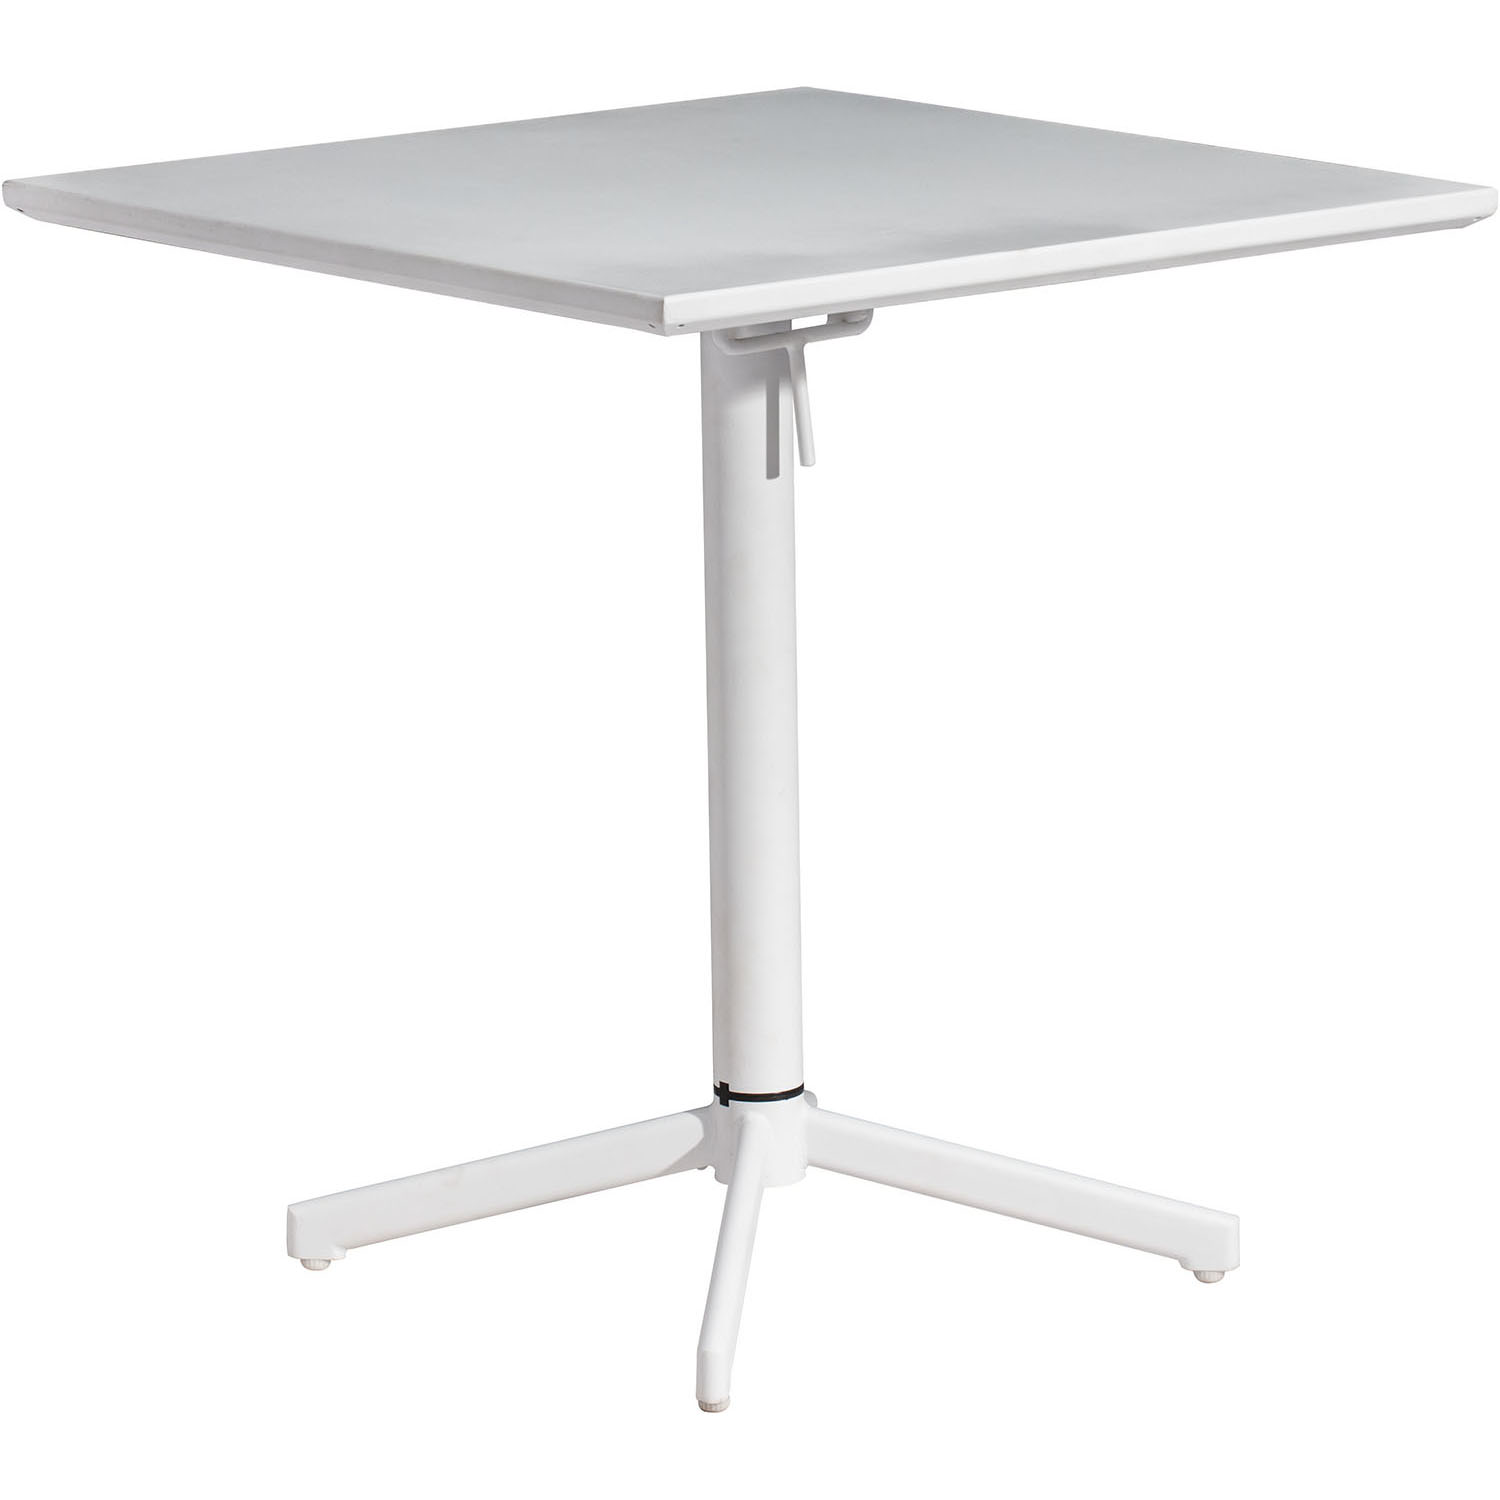 Affordable Outdoor Big Wave Square Folding Table Product Photo